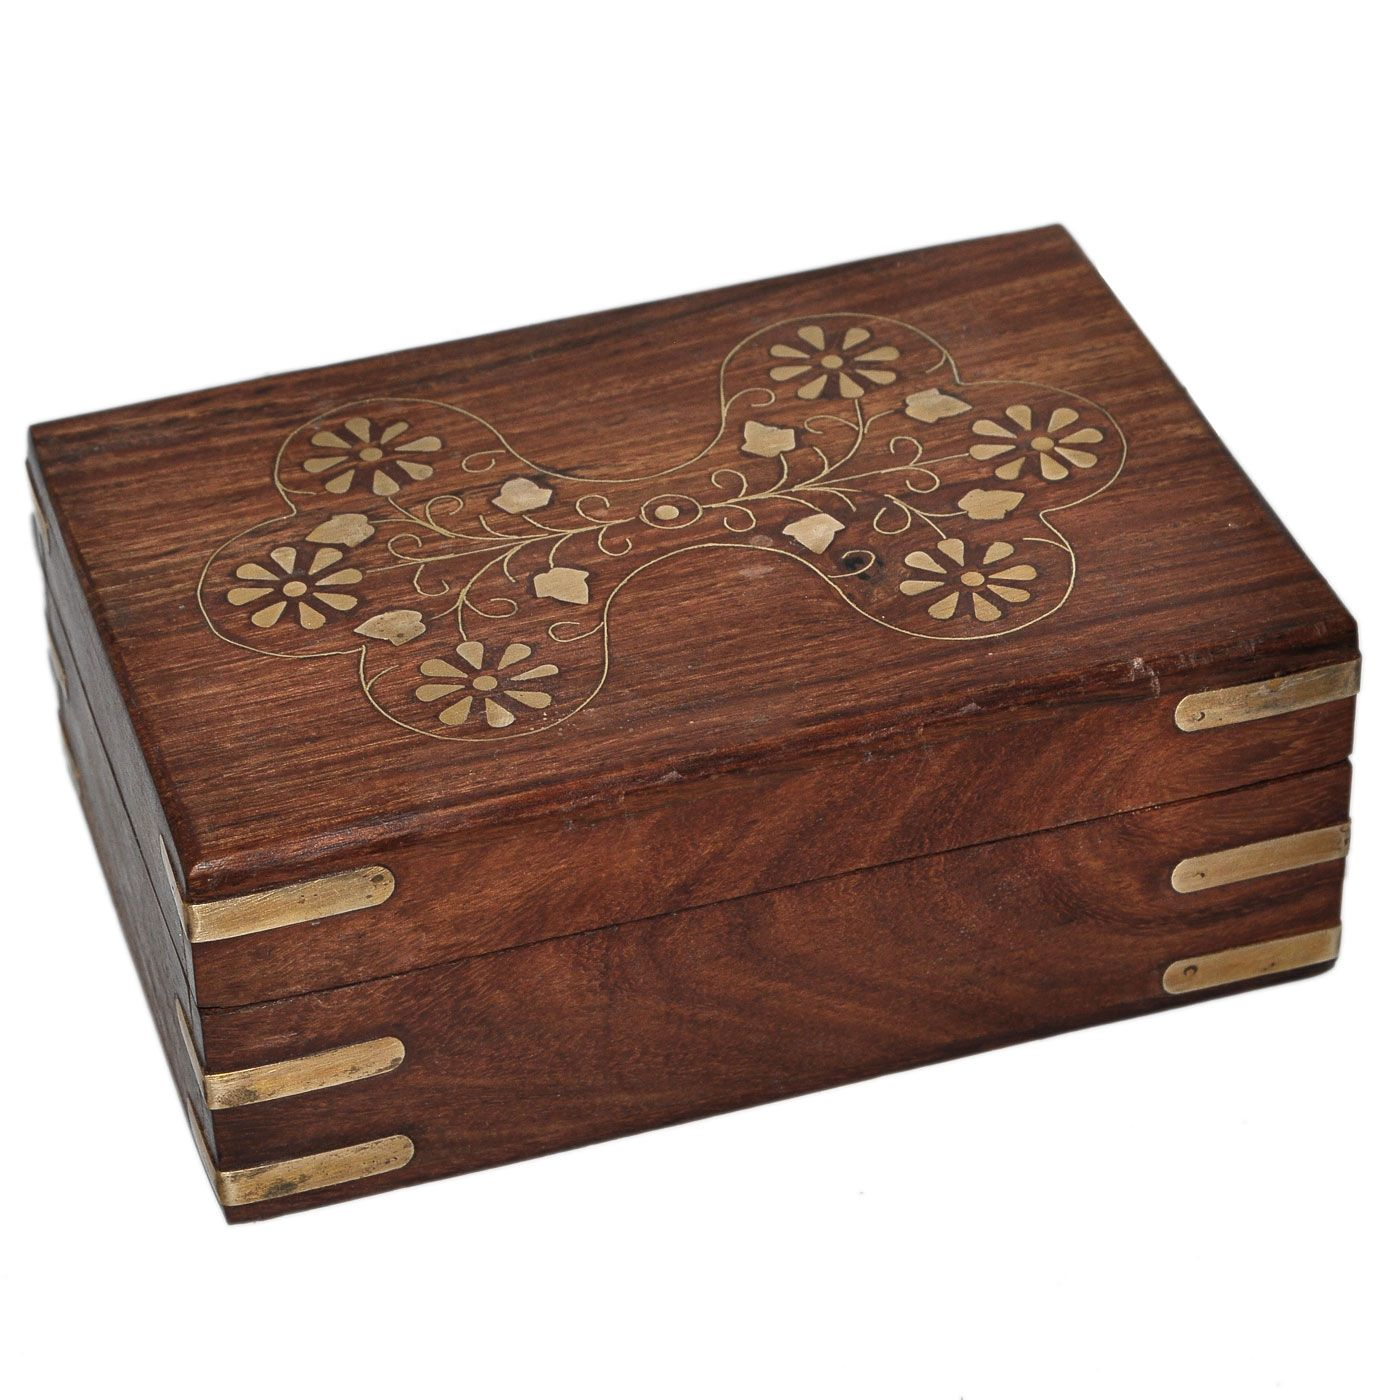 antique wooden jewelry box small wooden jewelry box jewelry box wooden wooden jewelry box. Black Bedroom Furniture Sets. Home Design Ideas